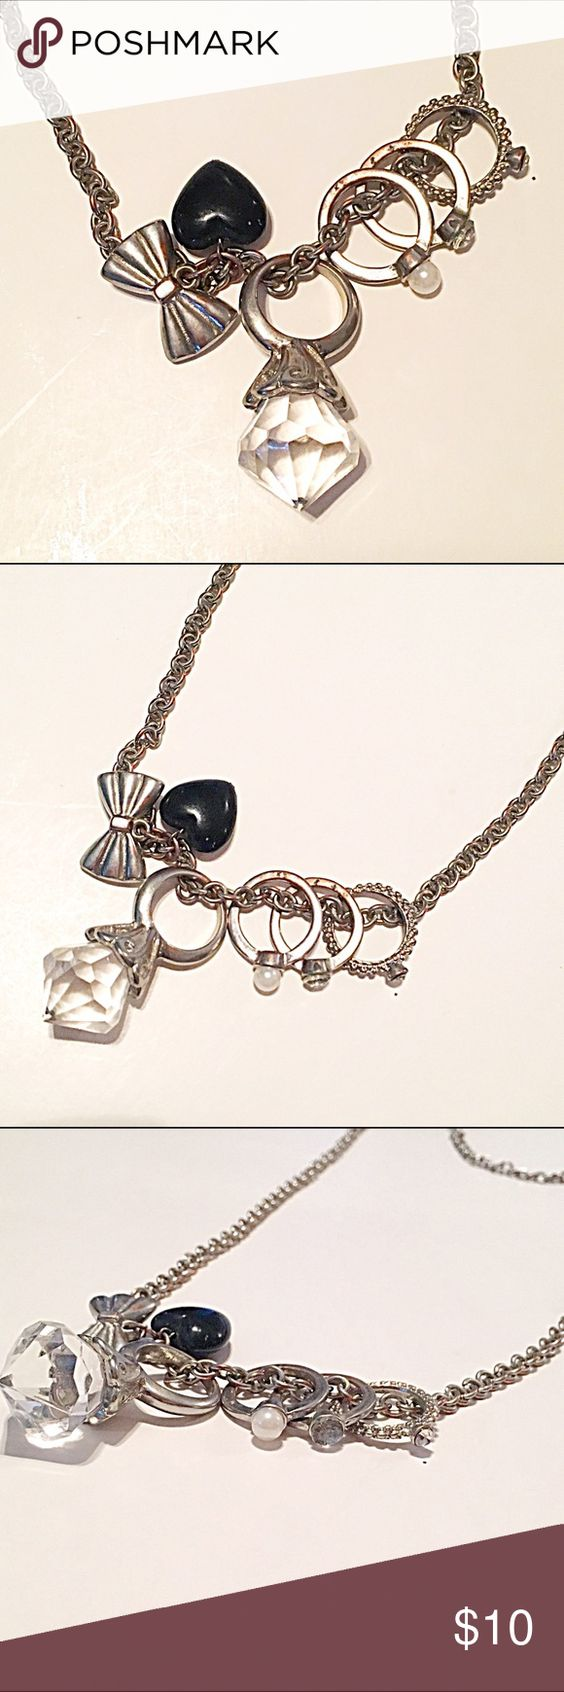 📿Bling & Ring Charm Necklace Silver tone chain necklace featuring a black heart, silver bow, a textured silver ring with clear rhinestone, a smooth silver ring with clear rhinestone, a smooth silver ring with with white faux pearl, and a silver ring with giant clear faceted stone. The rings are removable and a size 6. There is discoloration showing on the silver, but you really can only see it up close. Jewelry Necklaces